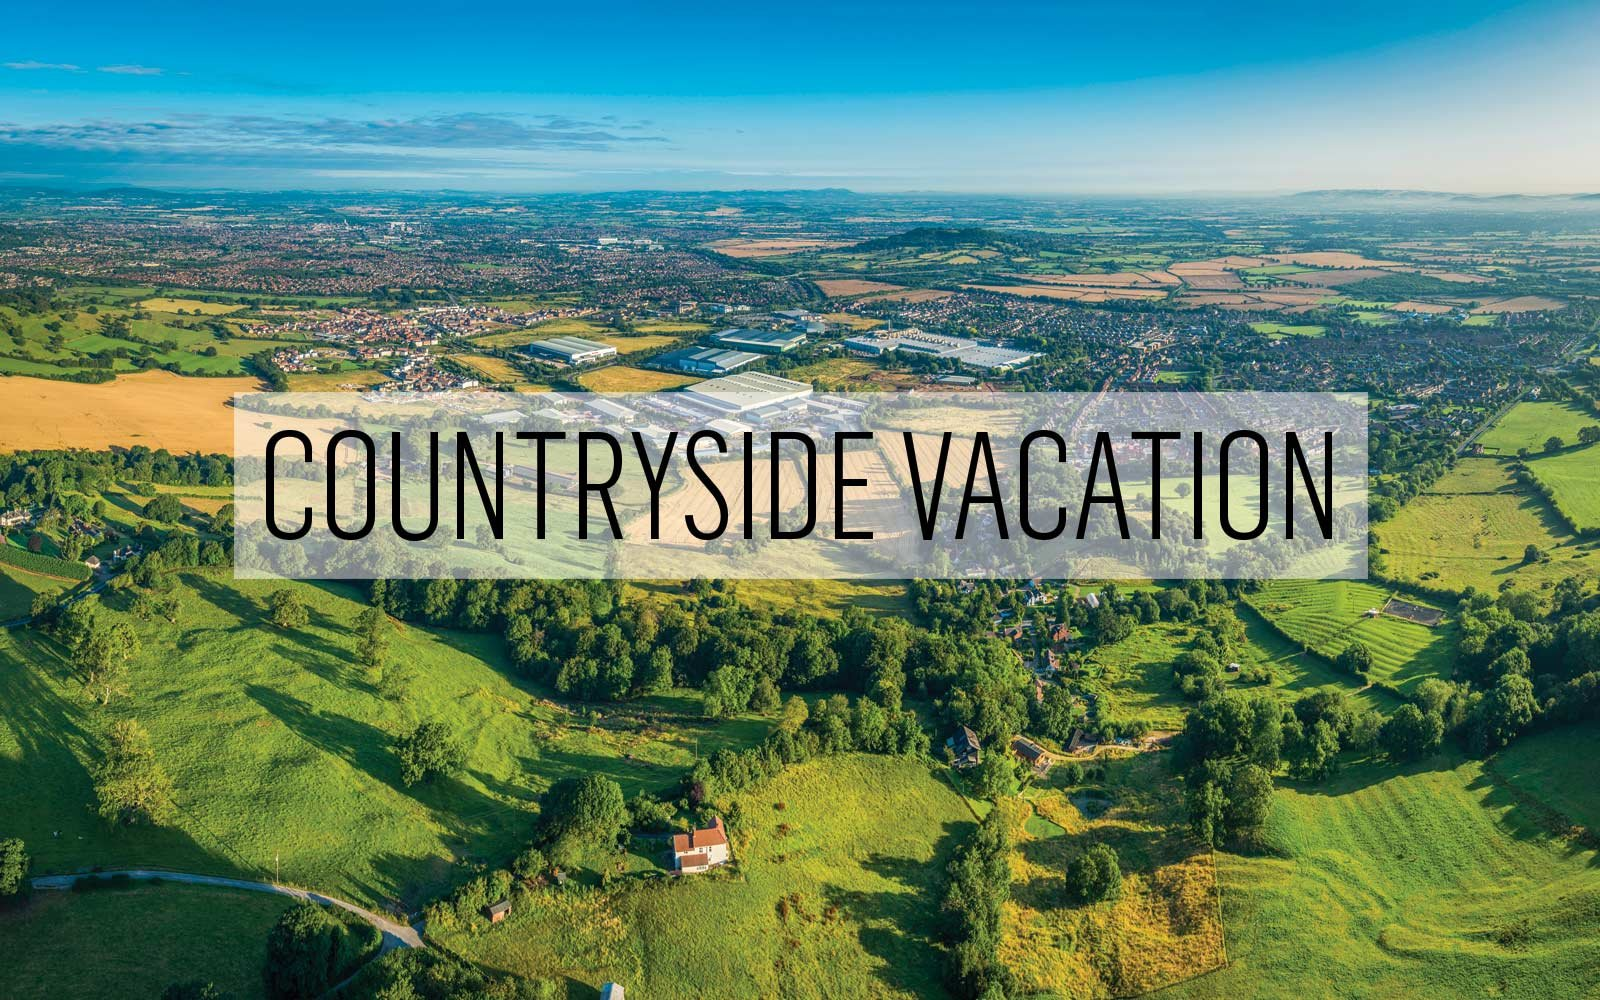 Countryside Vacation